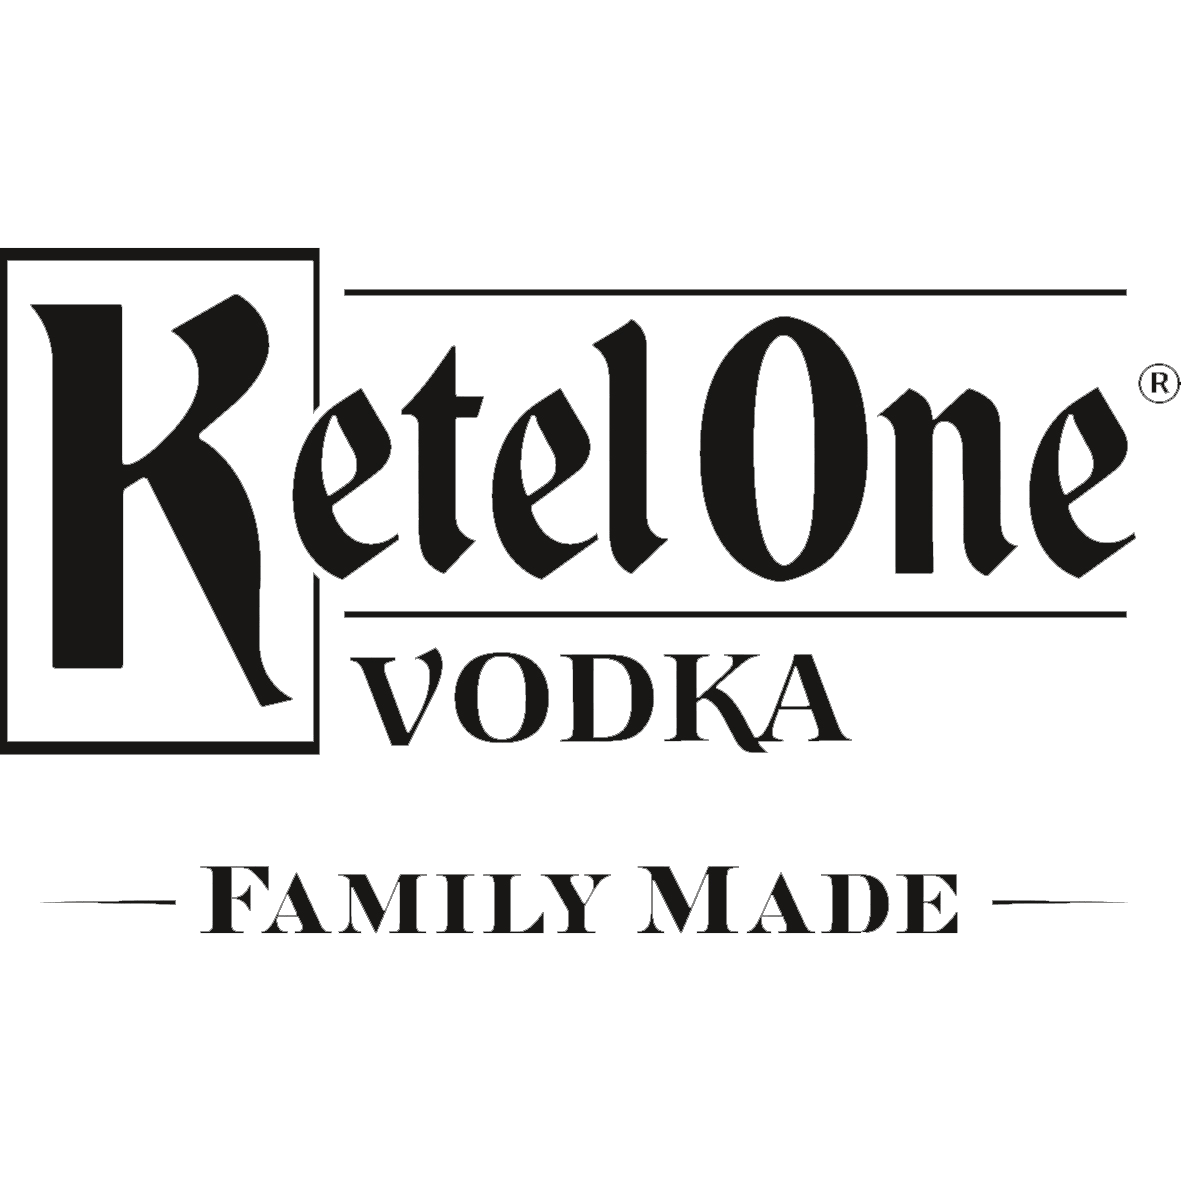 KETEL ONE.png